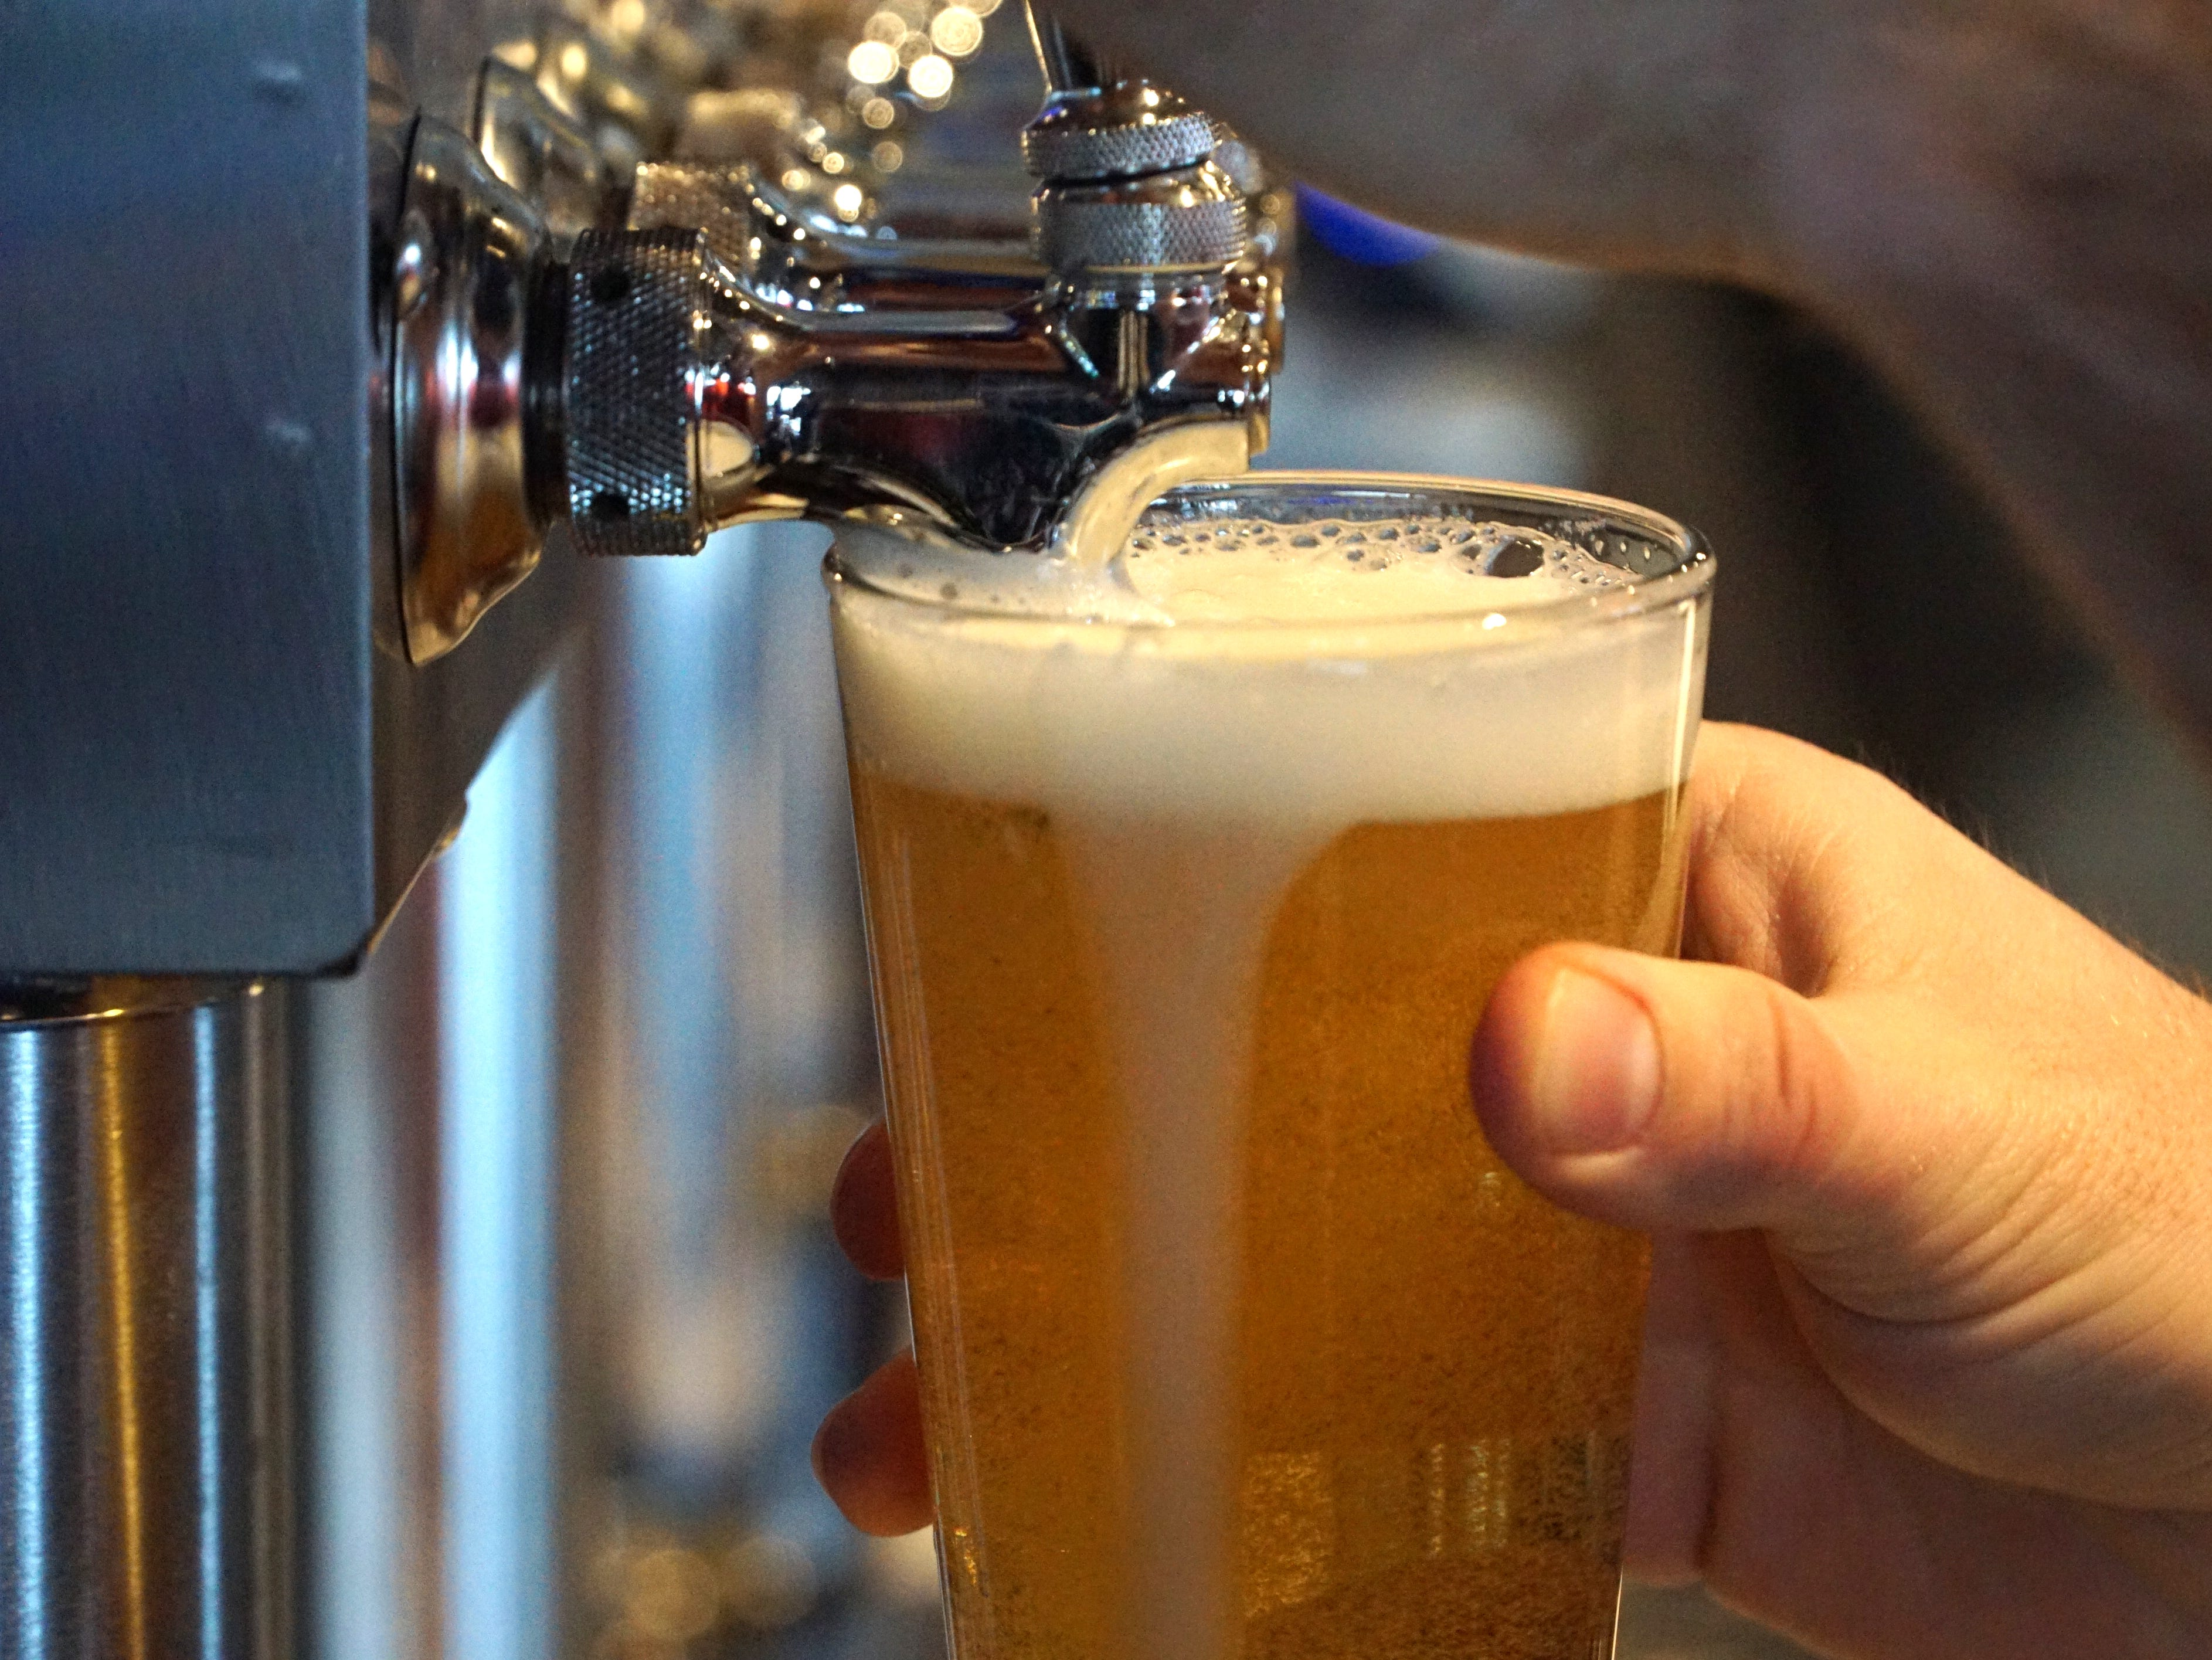 5th Avenue has a small but respectable number of craft brews on tap.